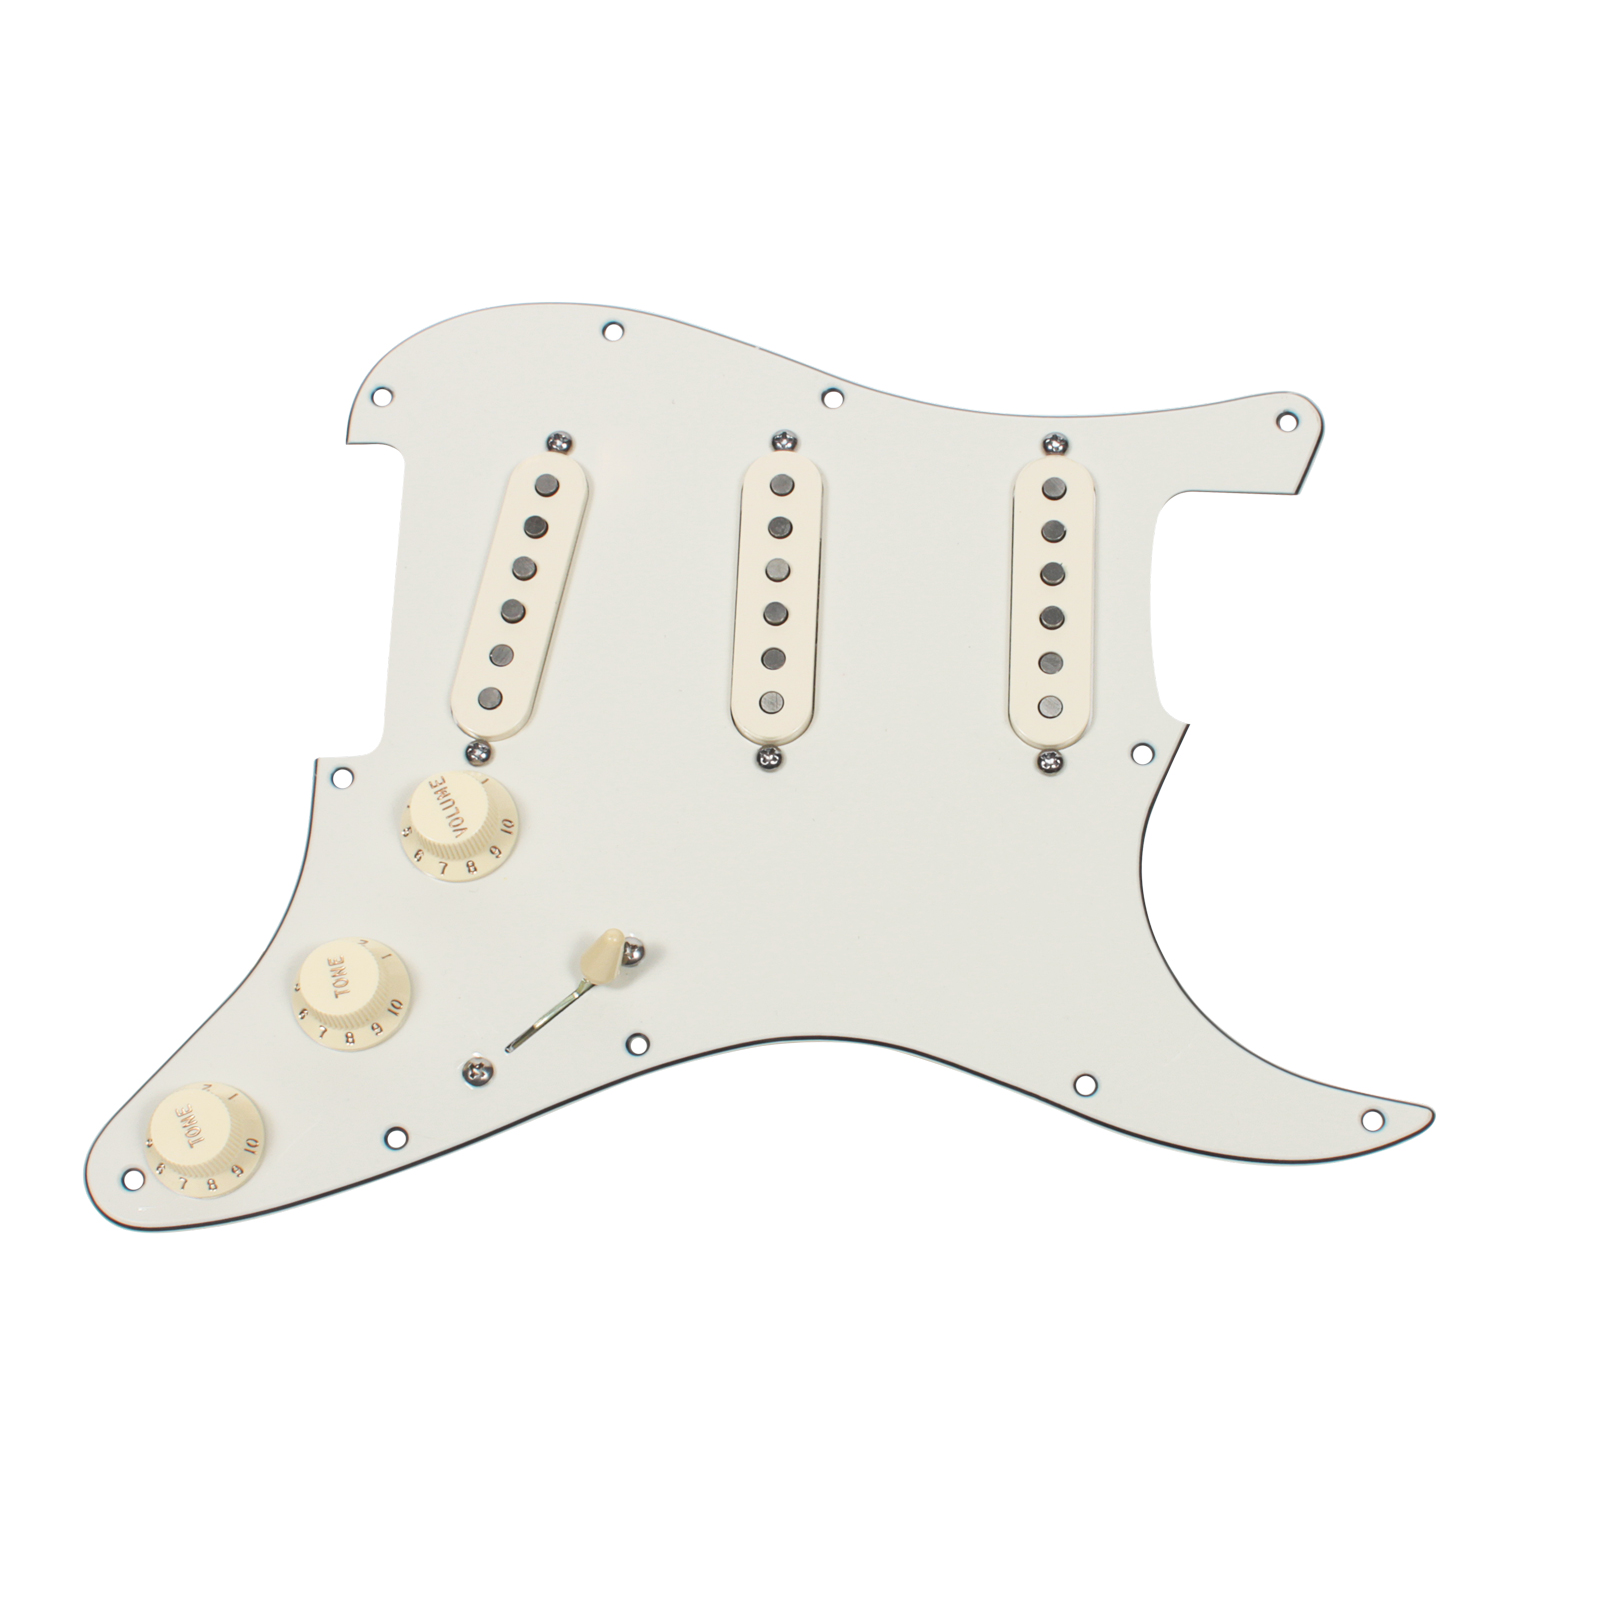 Click here to buy Fender Tex-Mex 920D Loaded Pre-wired Strat Pickguard PA AW.